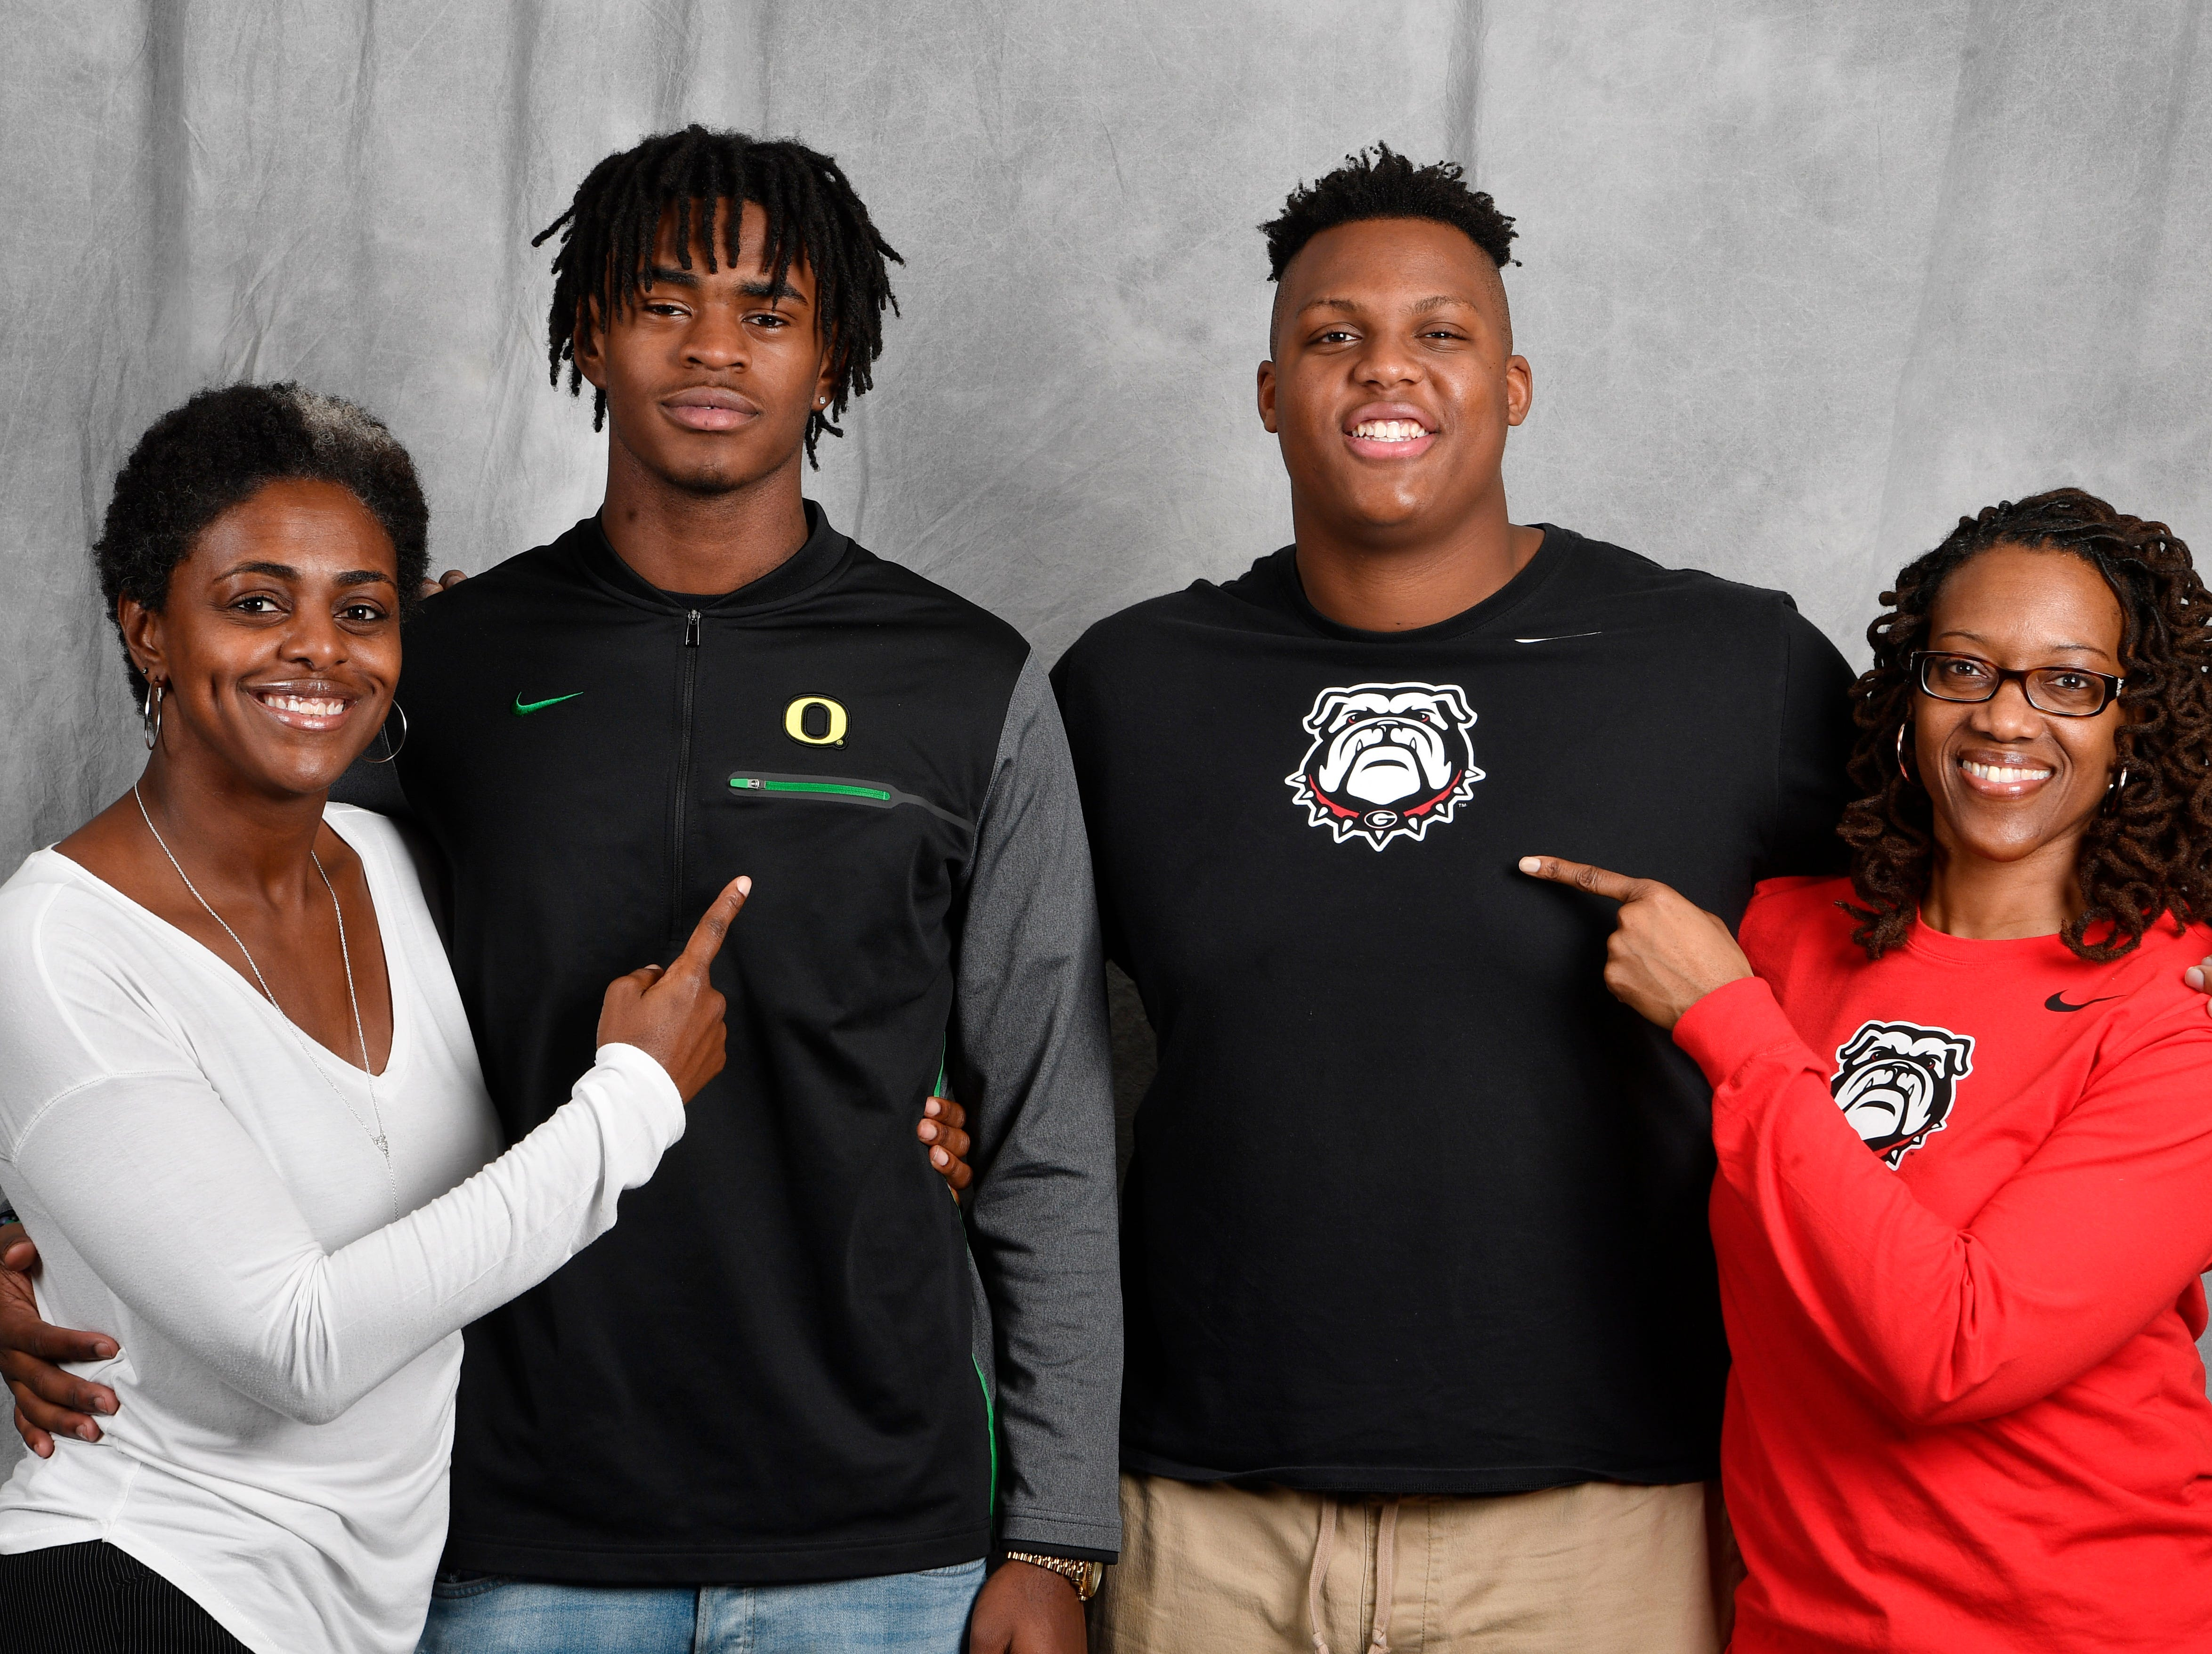 FRA's Lance Wilhoite and Tymon Mitchell pose with their moms in the Tennessean's photo booth on the first day of the early signing period. From left, are Travonya Wilhoite, Lance Wilhoite, Tymore Mitchell and Andrea McClain. Lance signed with Oregon to play football while Tymon signed with Georgia.